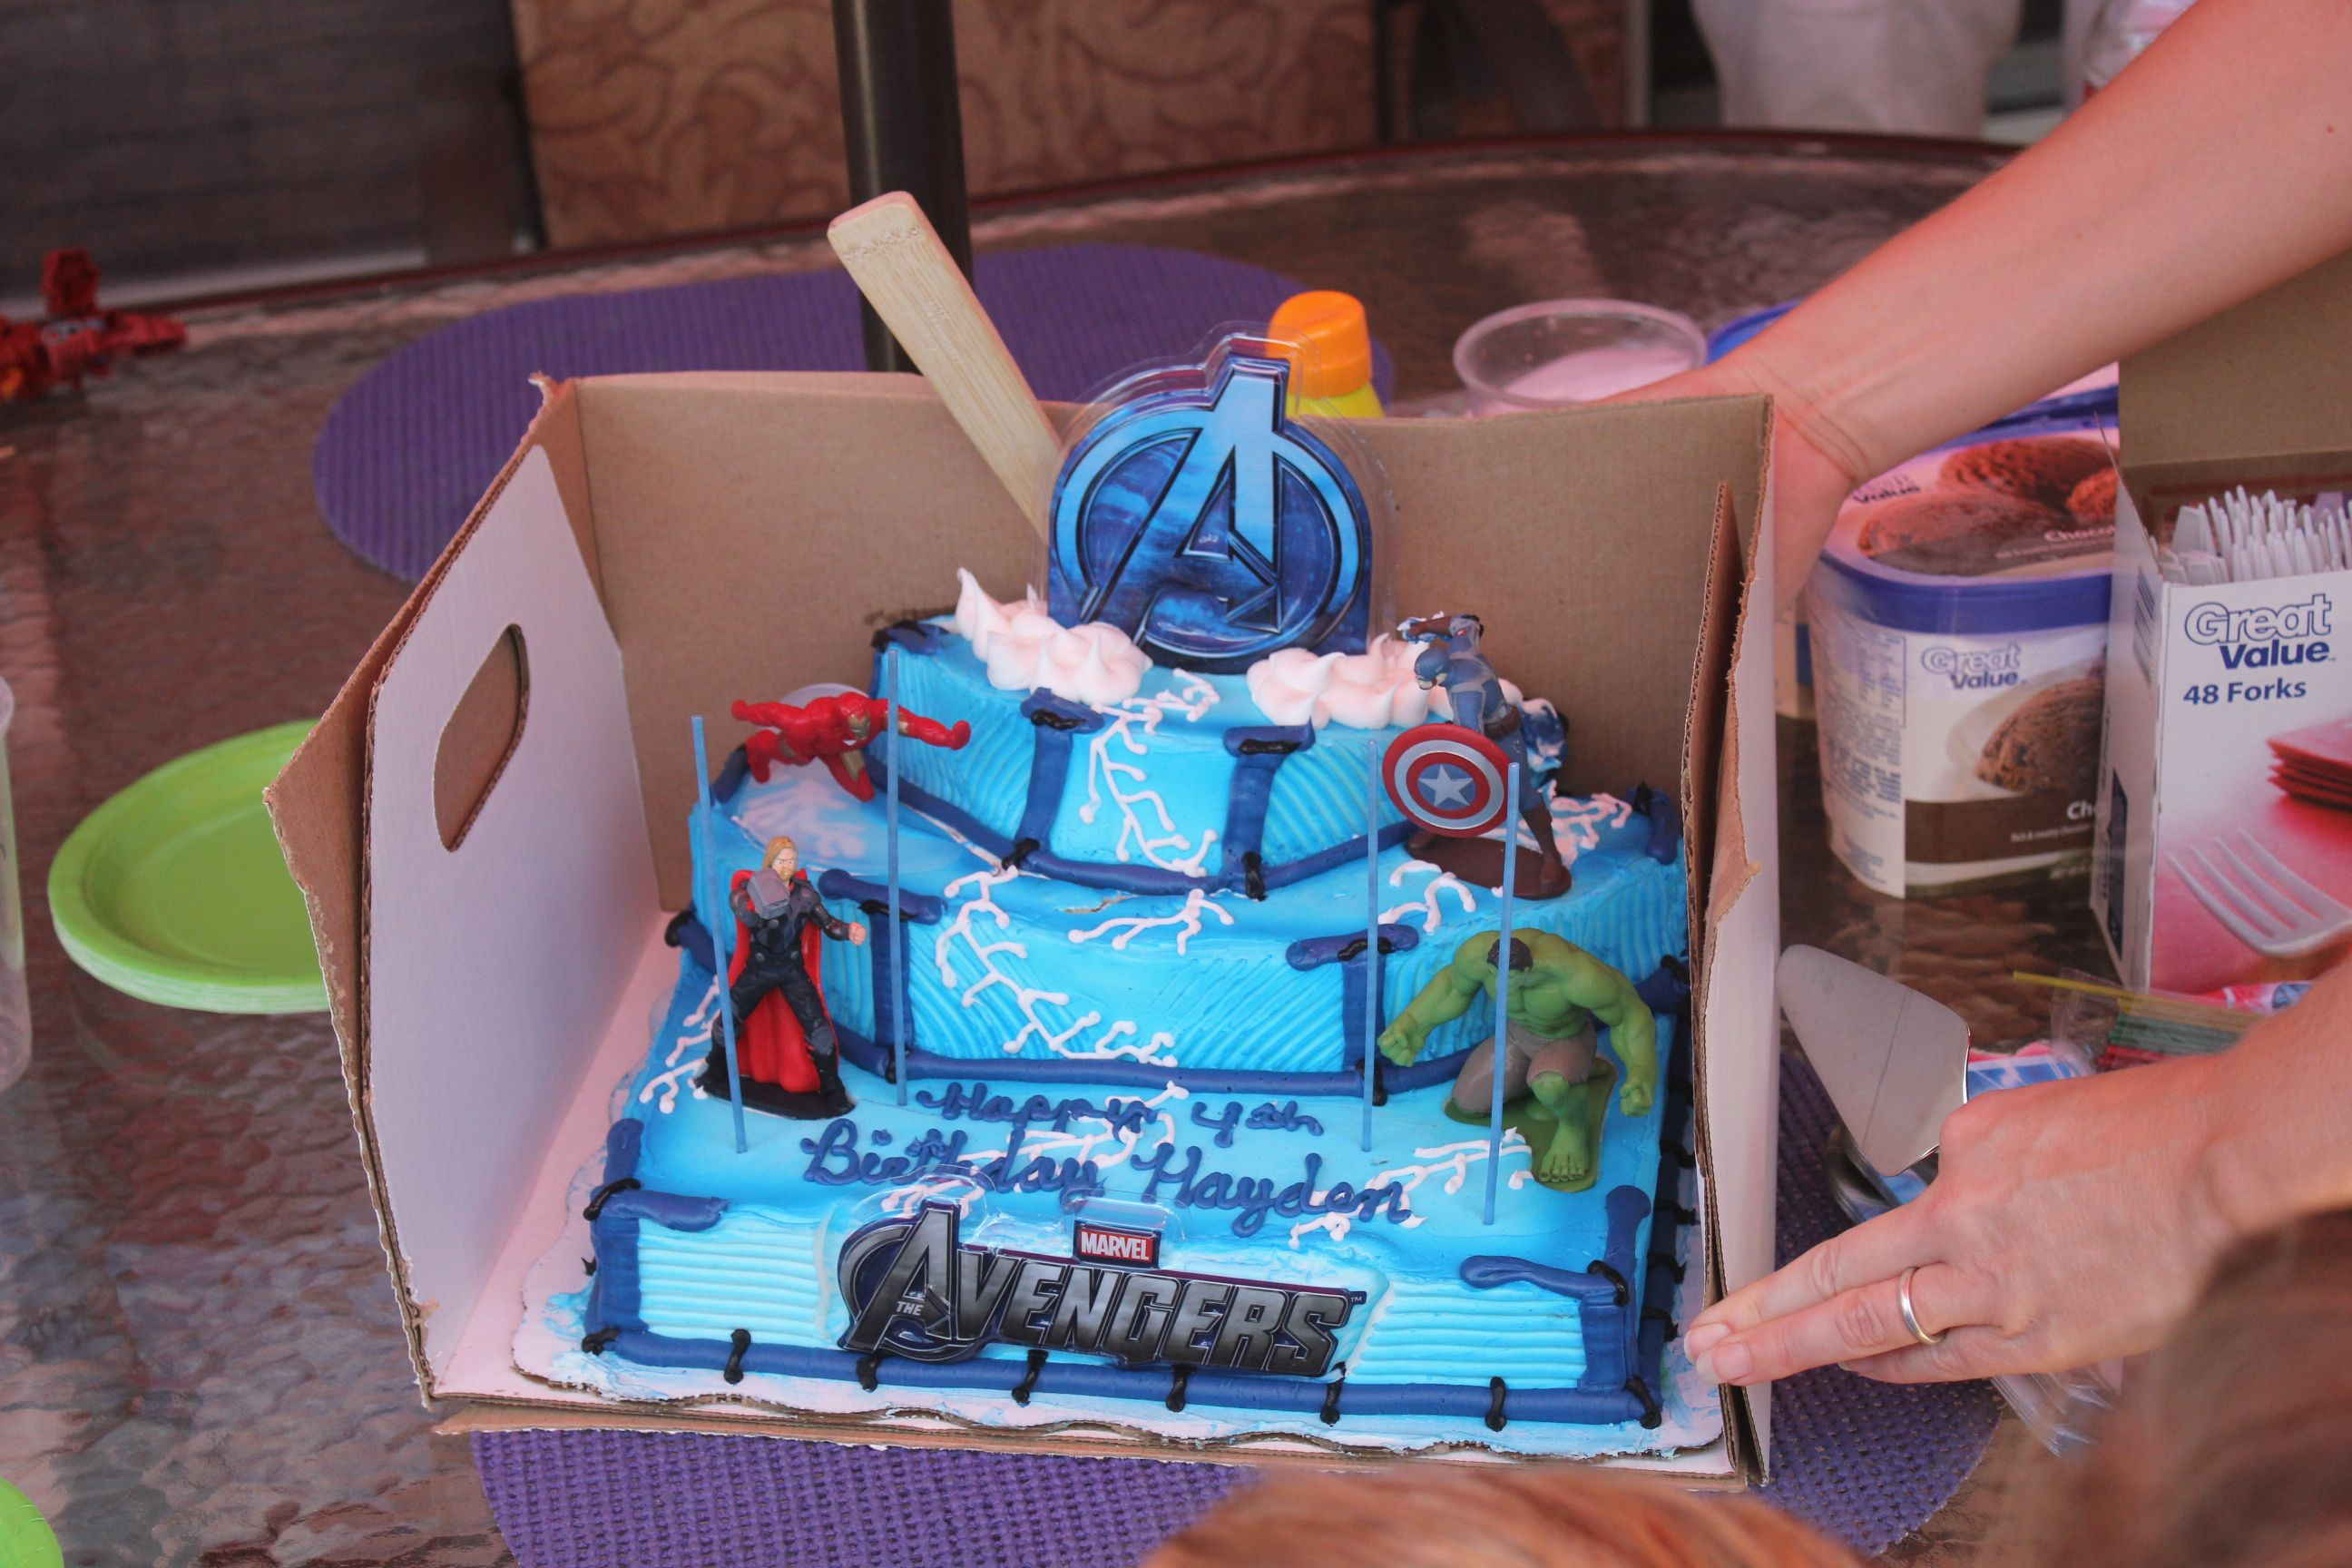 Avengers Cake From Walmart Unfortunately The Top Layer Slipped In Car Ride Homenot Bad Except For That